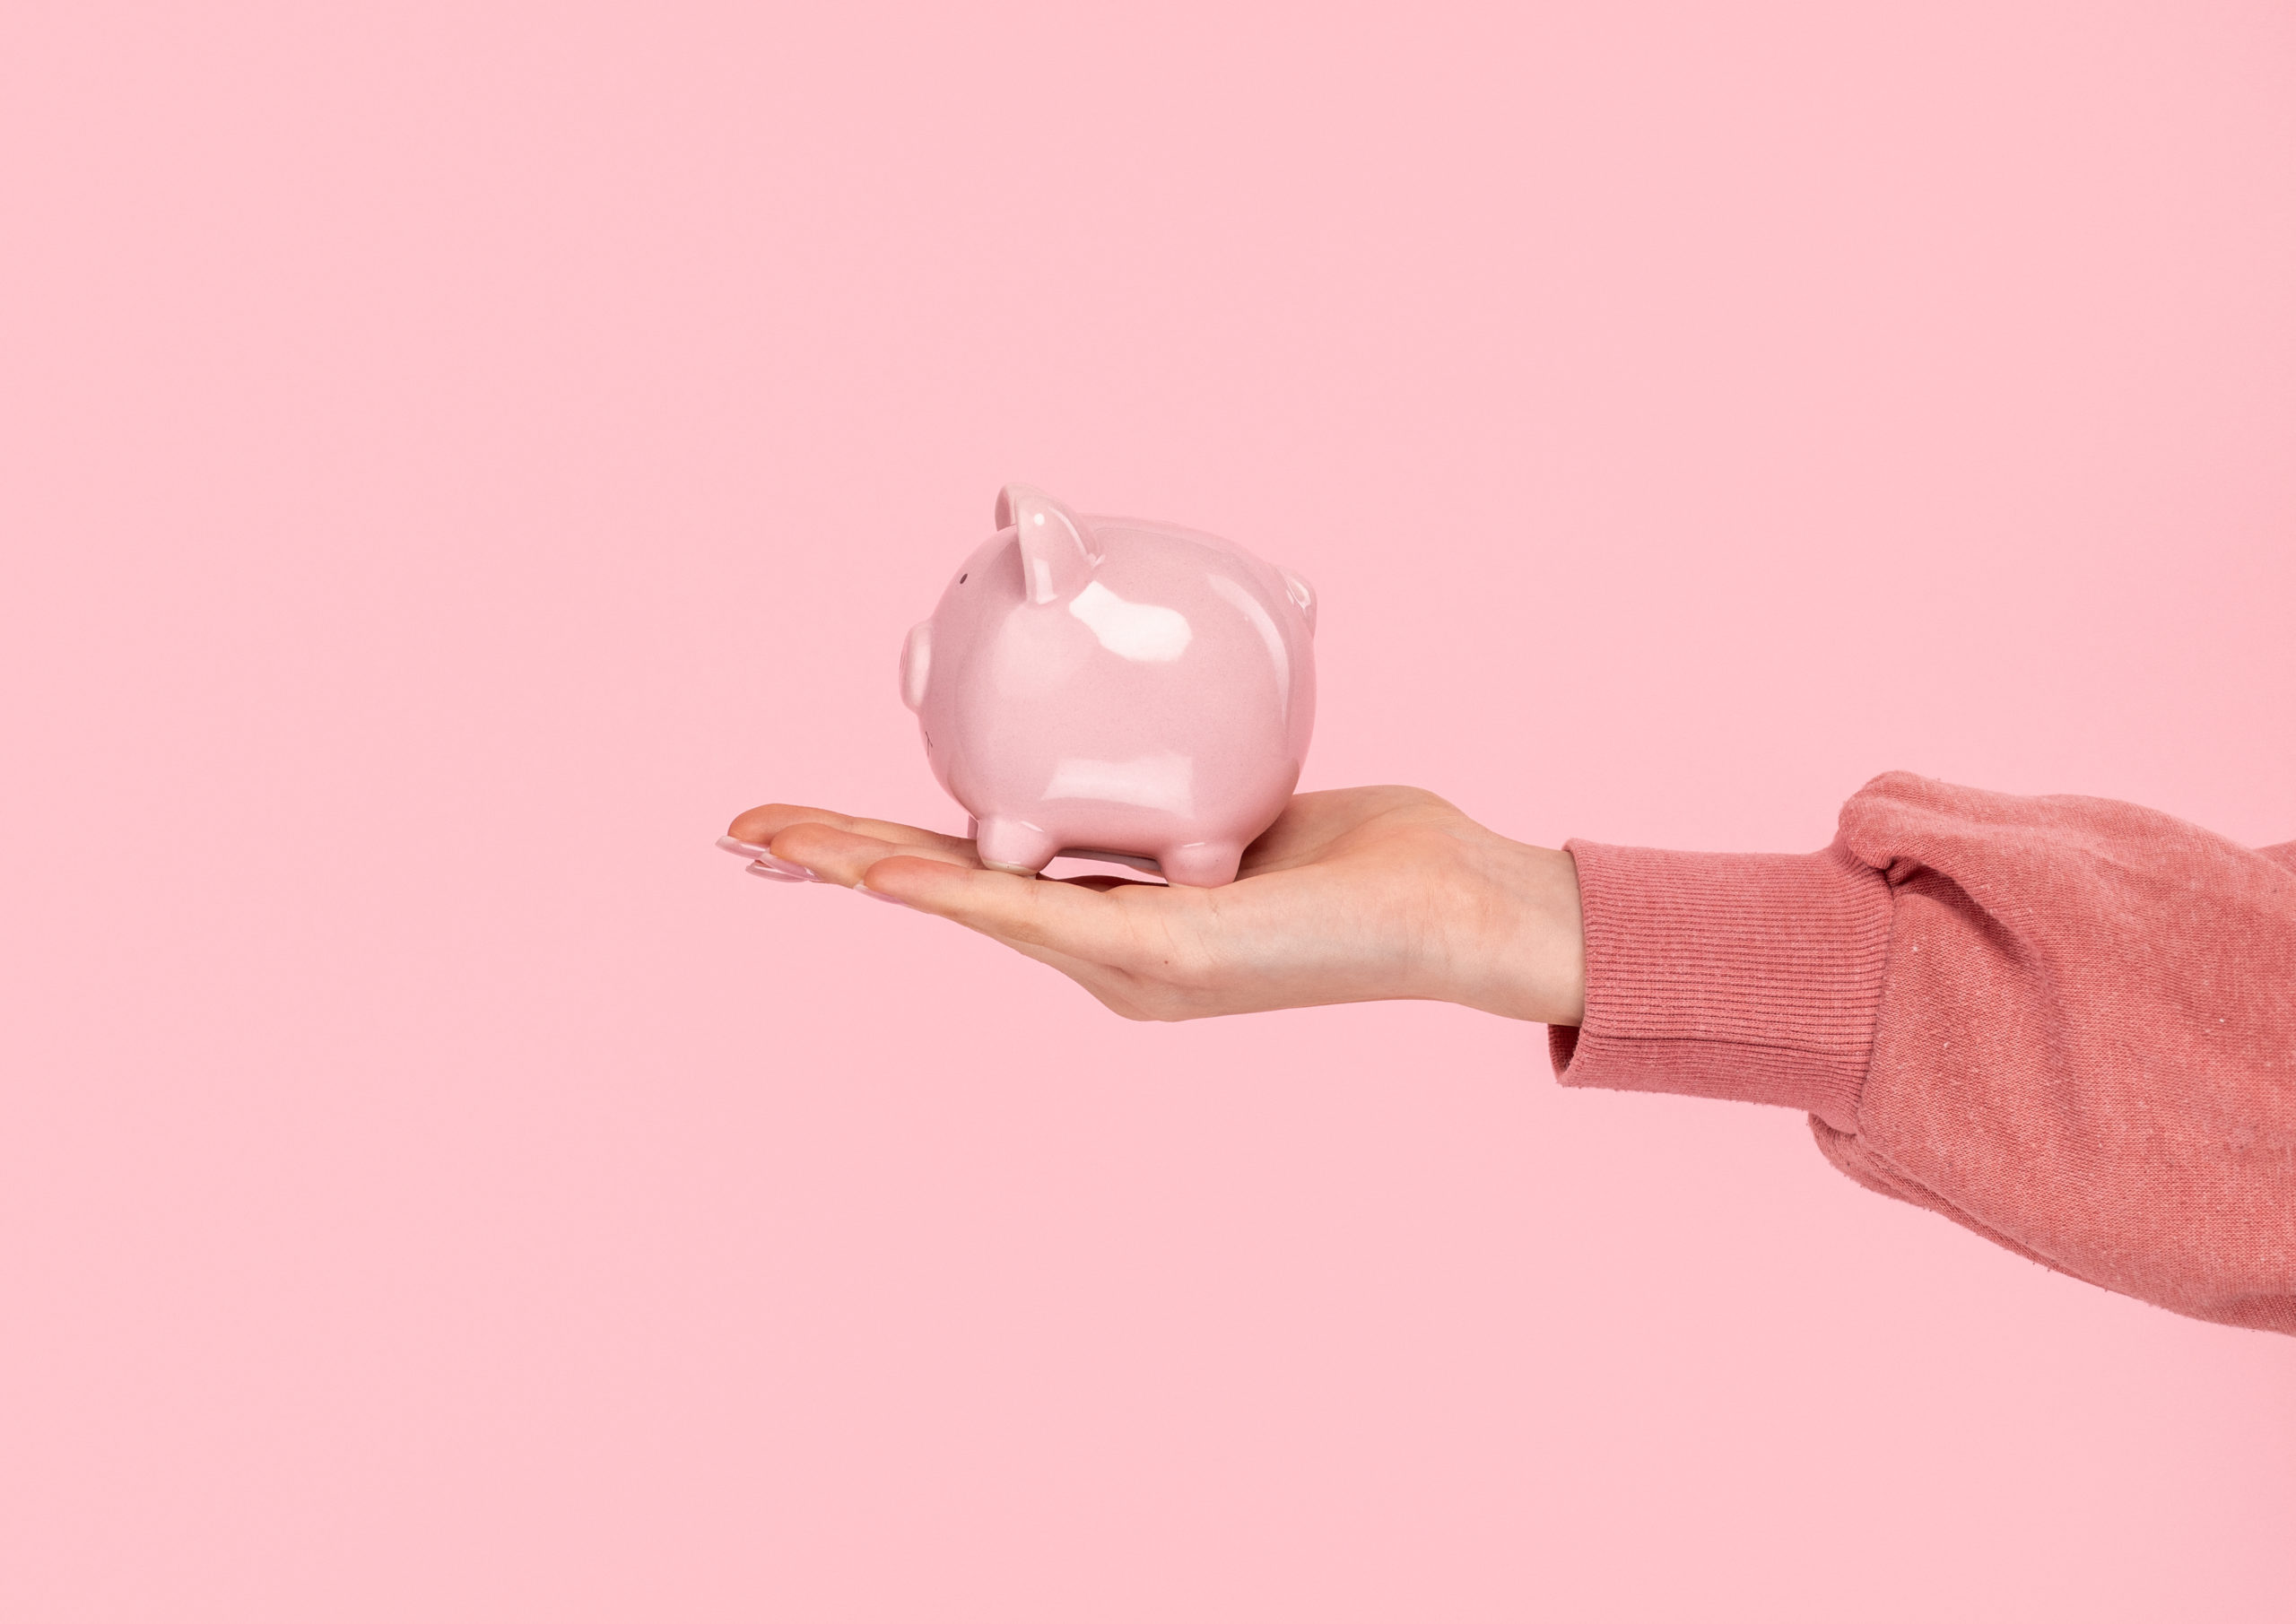 a hand holding a pink ceramic pig